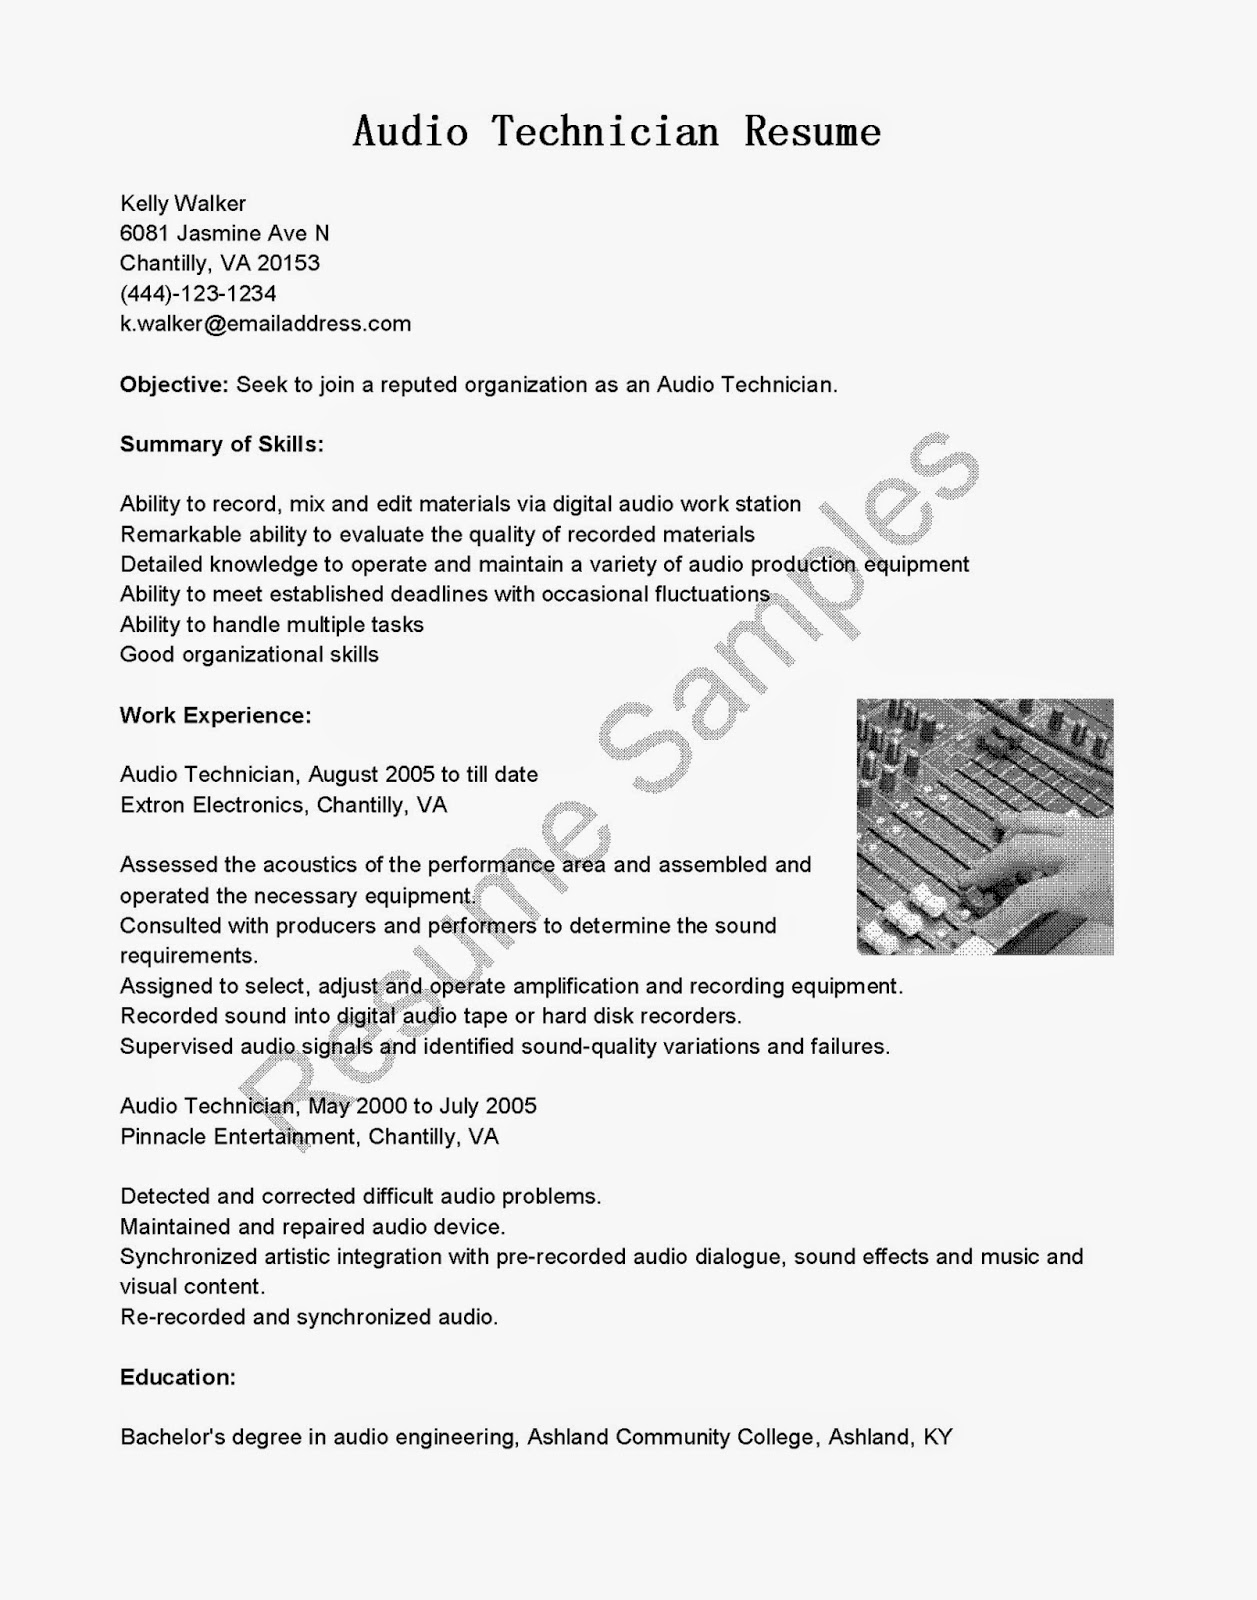 Ece Resume Format   Resume Format Download Pdf  uqpa   digimerge net  Perfect Resume Example Resume And Cover Letter Latest Chartered Accountant Resume Word Format Free Download